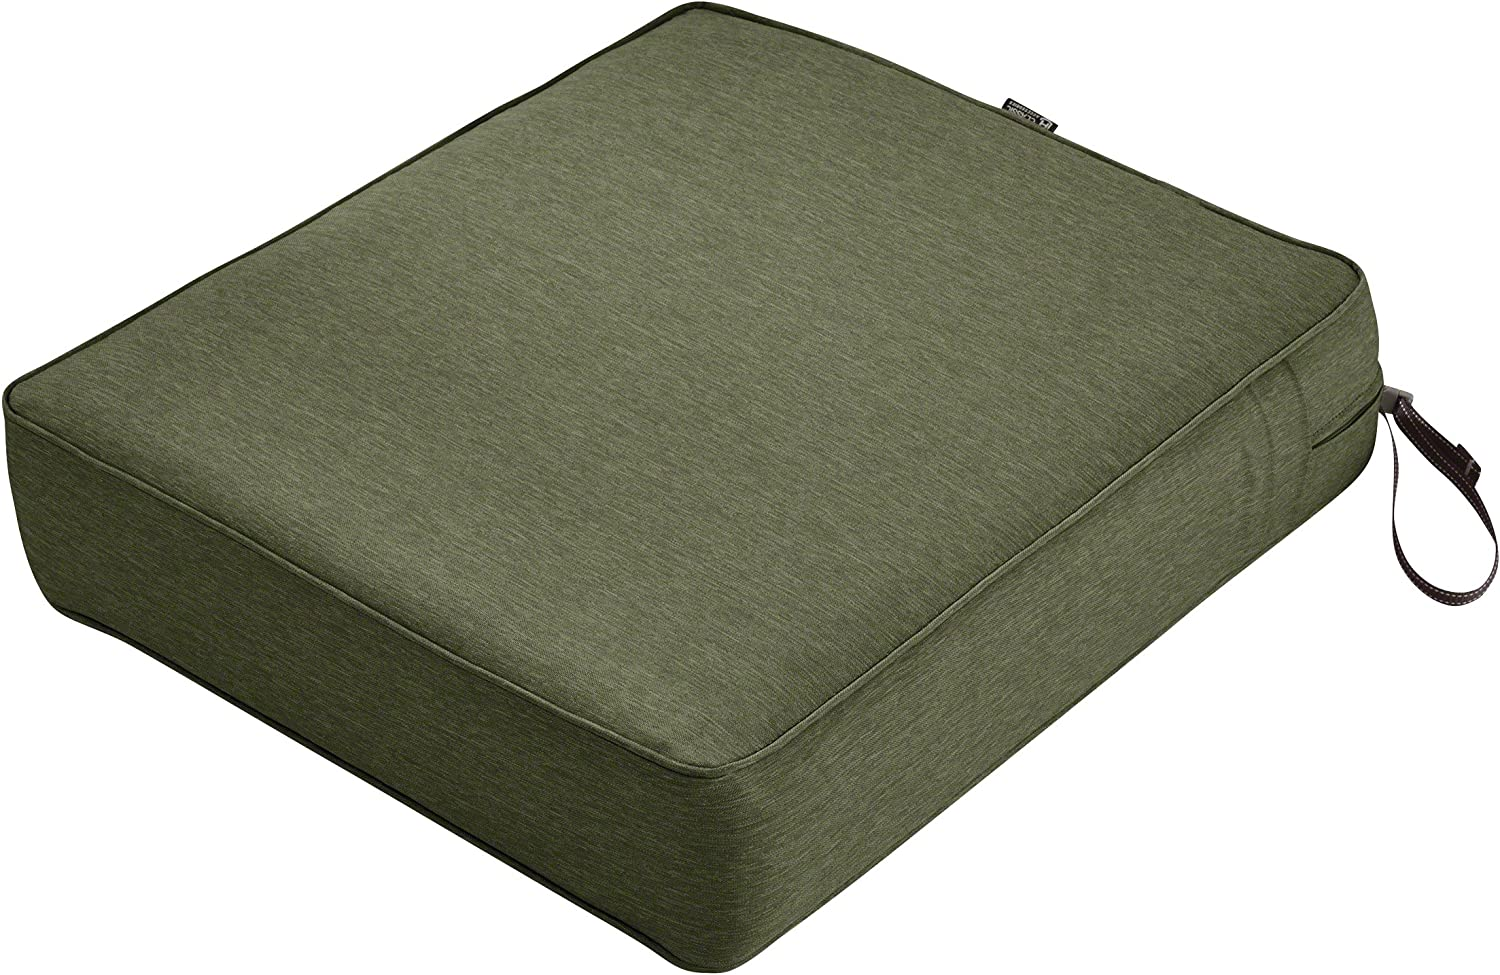 Classic Accessories Montlake Water-Resistant 23 x 25 x 5 Inch Rectangle Outdoor Seat Cushion, Patio Furniture Chair Cushion, Heather Fern Green